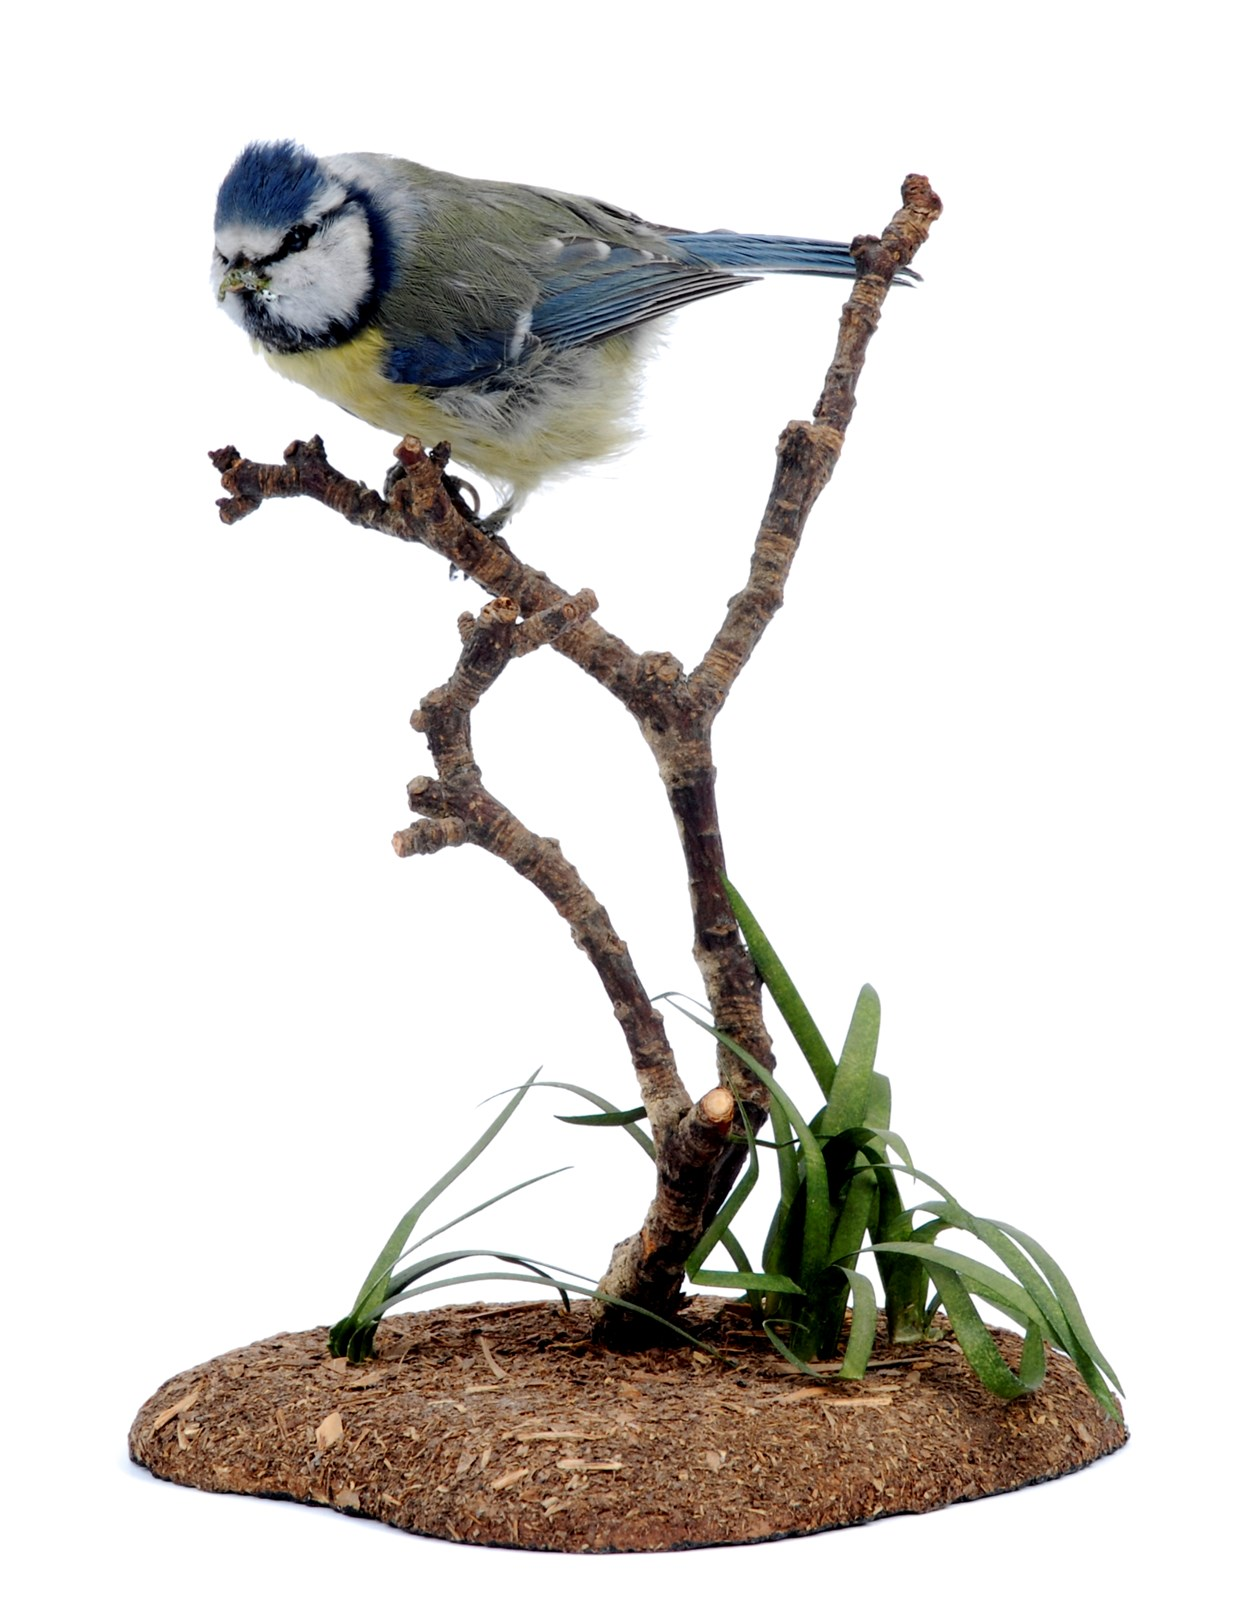 Birdwatching project: A blue tit from the Leeds Museums and Galleries collection which is being used to help home birdwatchers identify birds in their gardens.